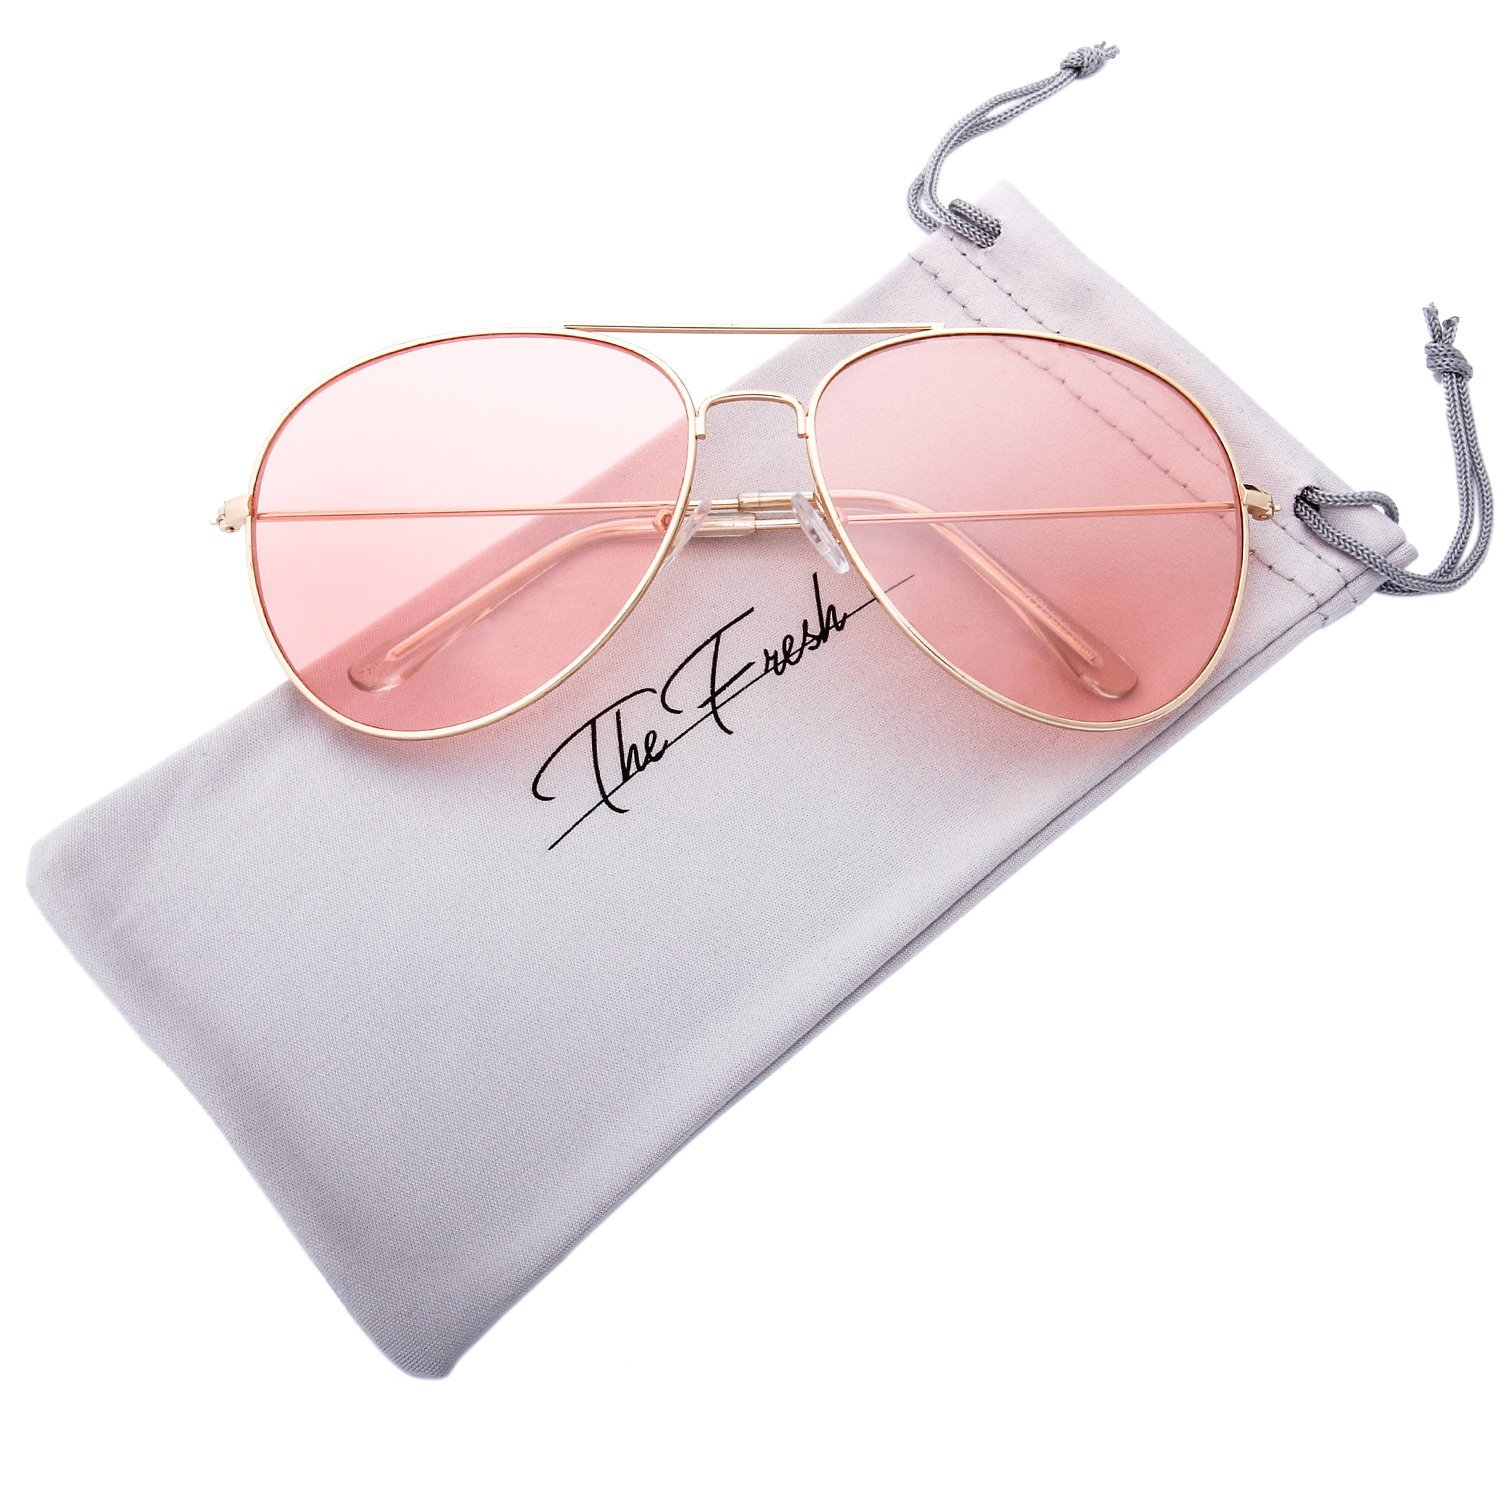 The Fresh Classic Metal Frame Light Color Lens XL Oversized Aviator Sunglasses with Gift Box (3-Glod, Pink)